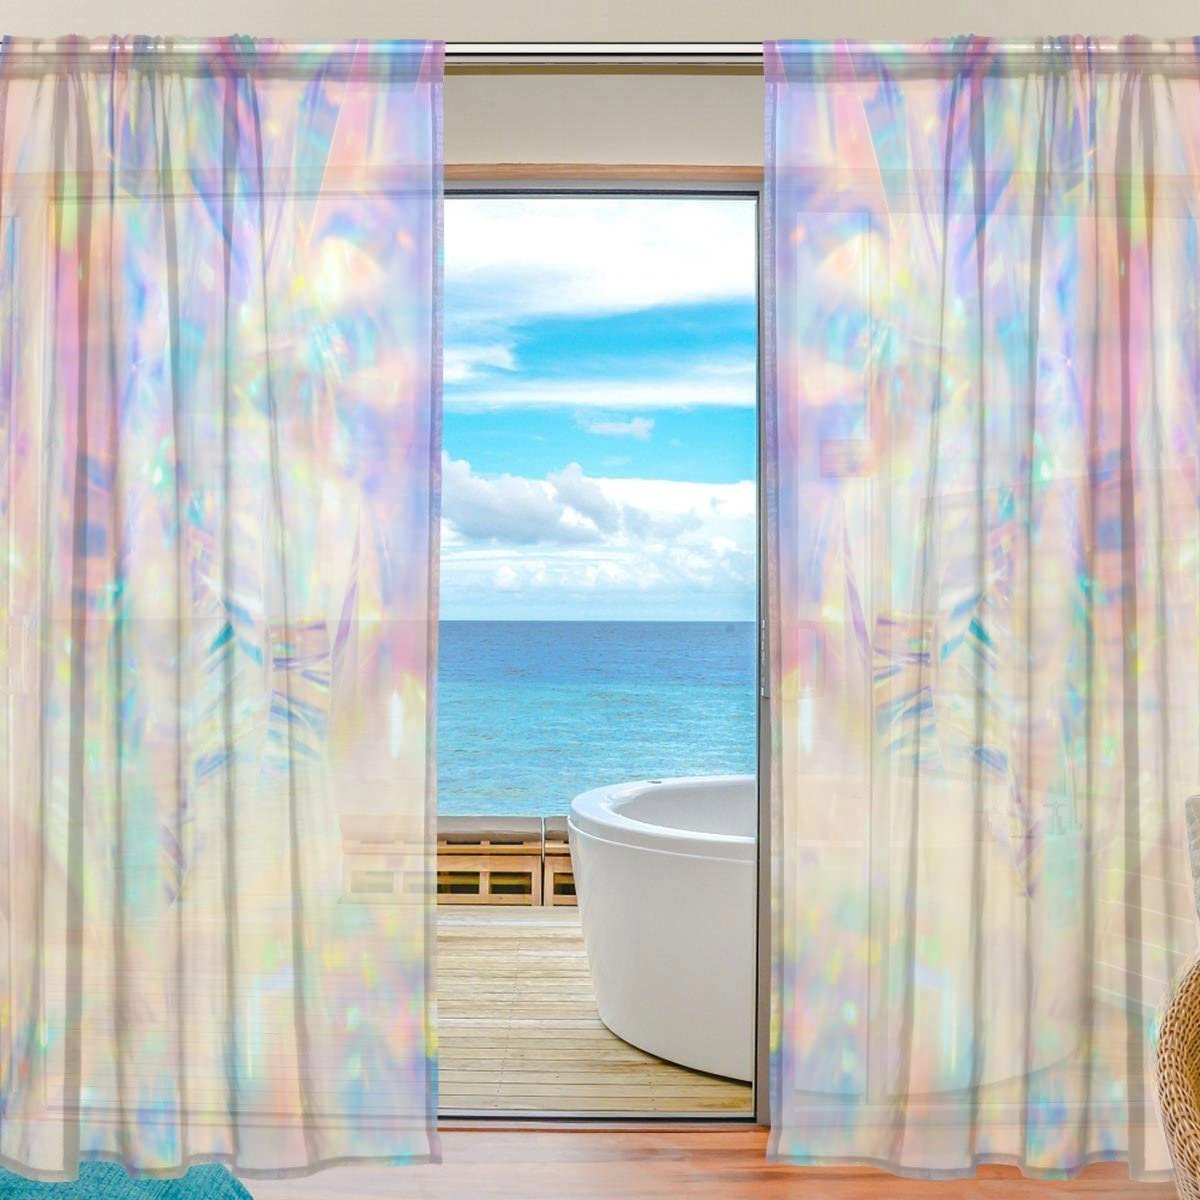 Floral Holographic Iridescent Metallic Semi Sheer Curtains Window Voile Drapes Panels Treatment-55x84in for Living Room Bedroom Kids Room, 2 Pieces